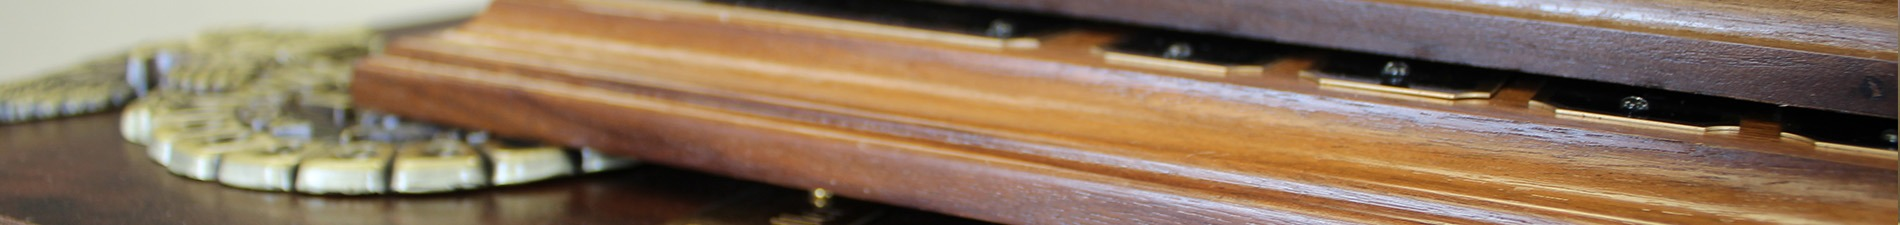 Header image with closeup of wooden plaque bases